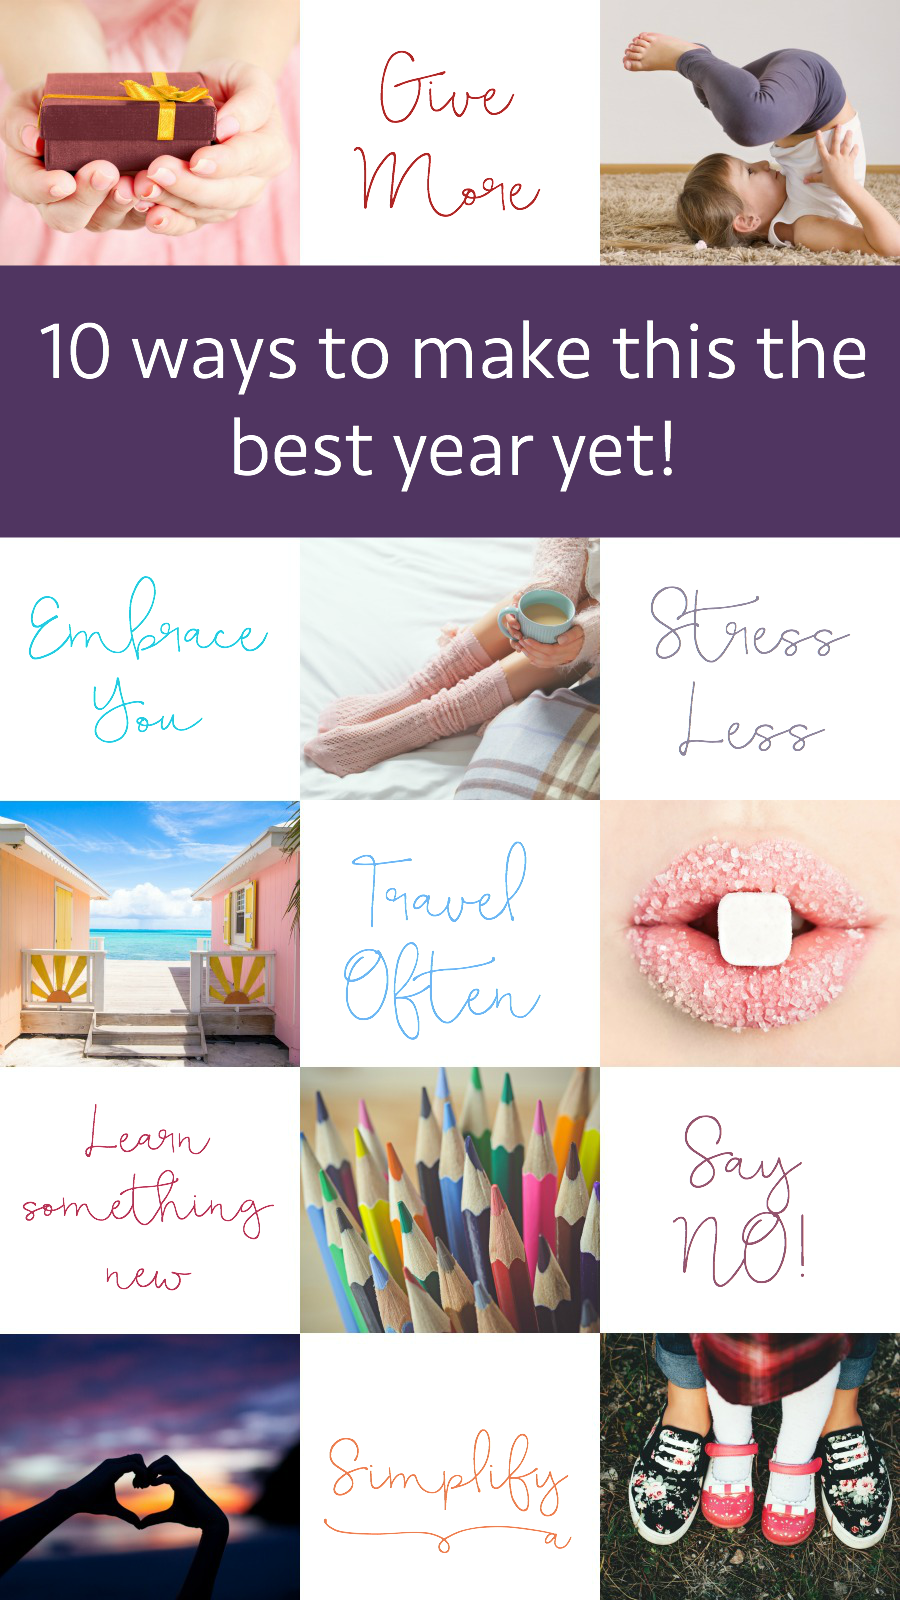 Instead of lofty resolutions, try using these simple guidelines to make this your best year ever